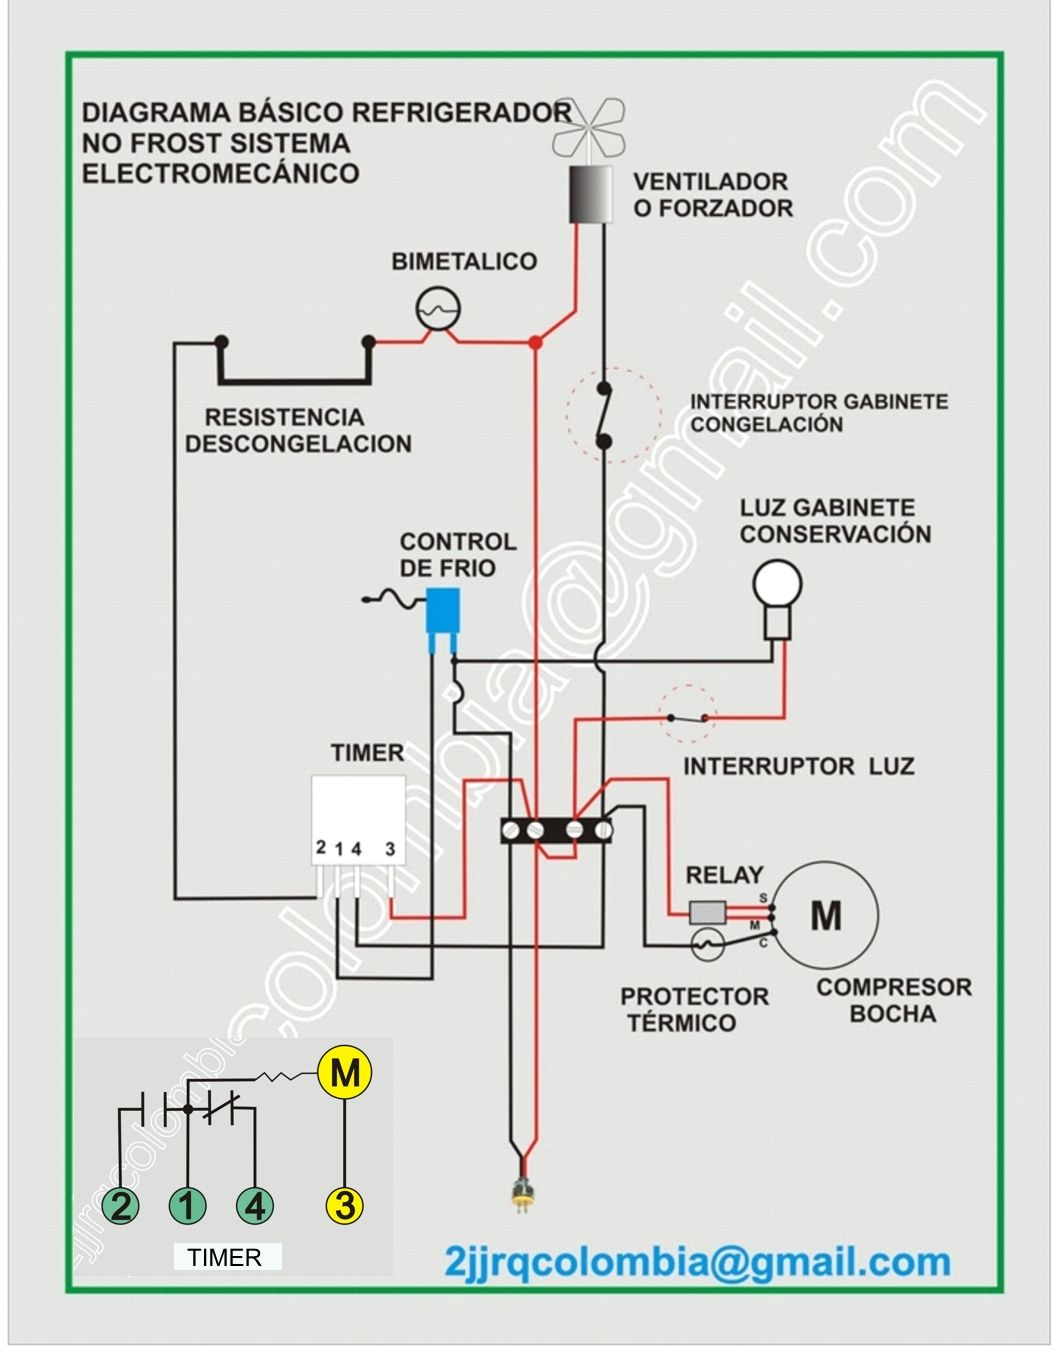 Diagrama Electrico No Frost Jpg 1052 1355 Air Conditioner Maintenance General Electric Diagram